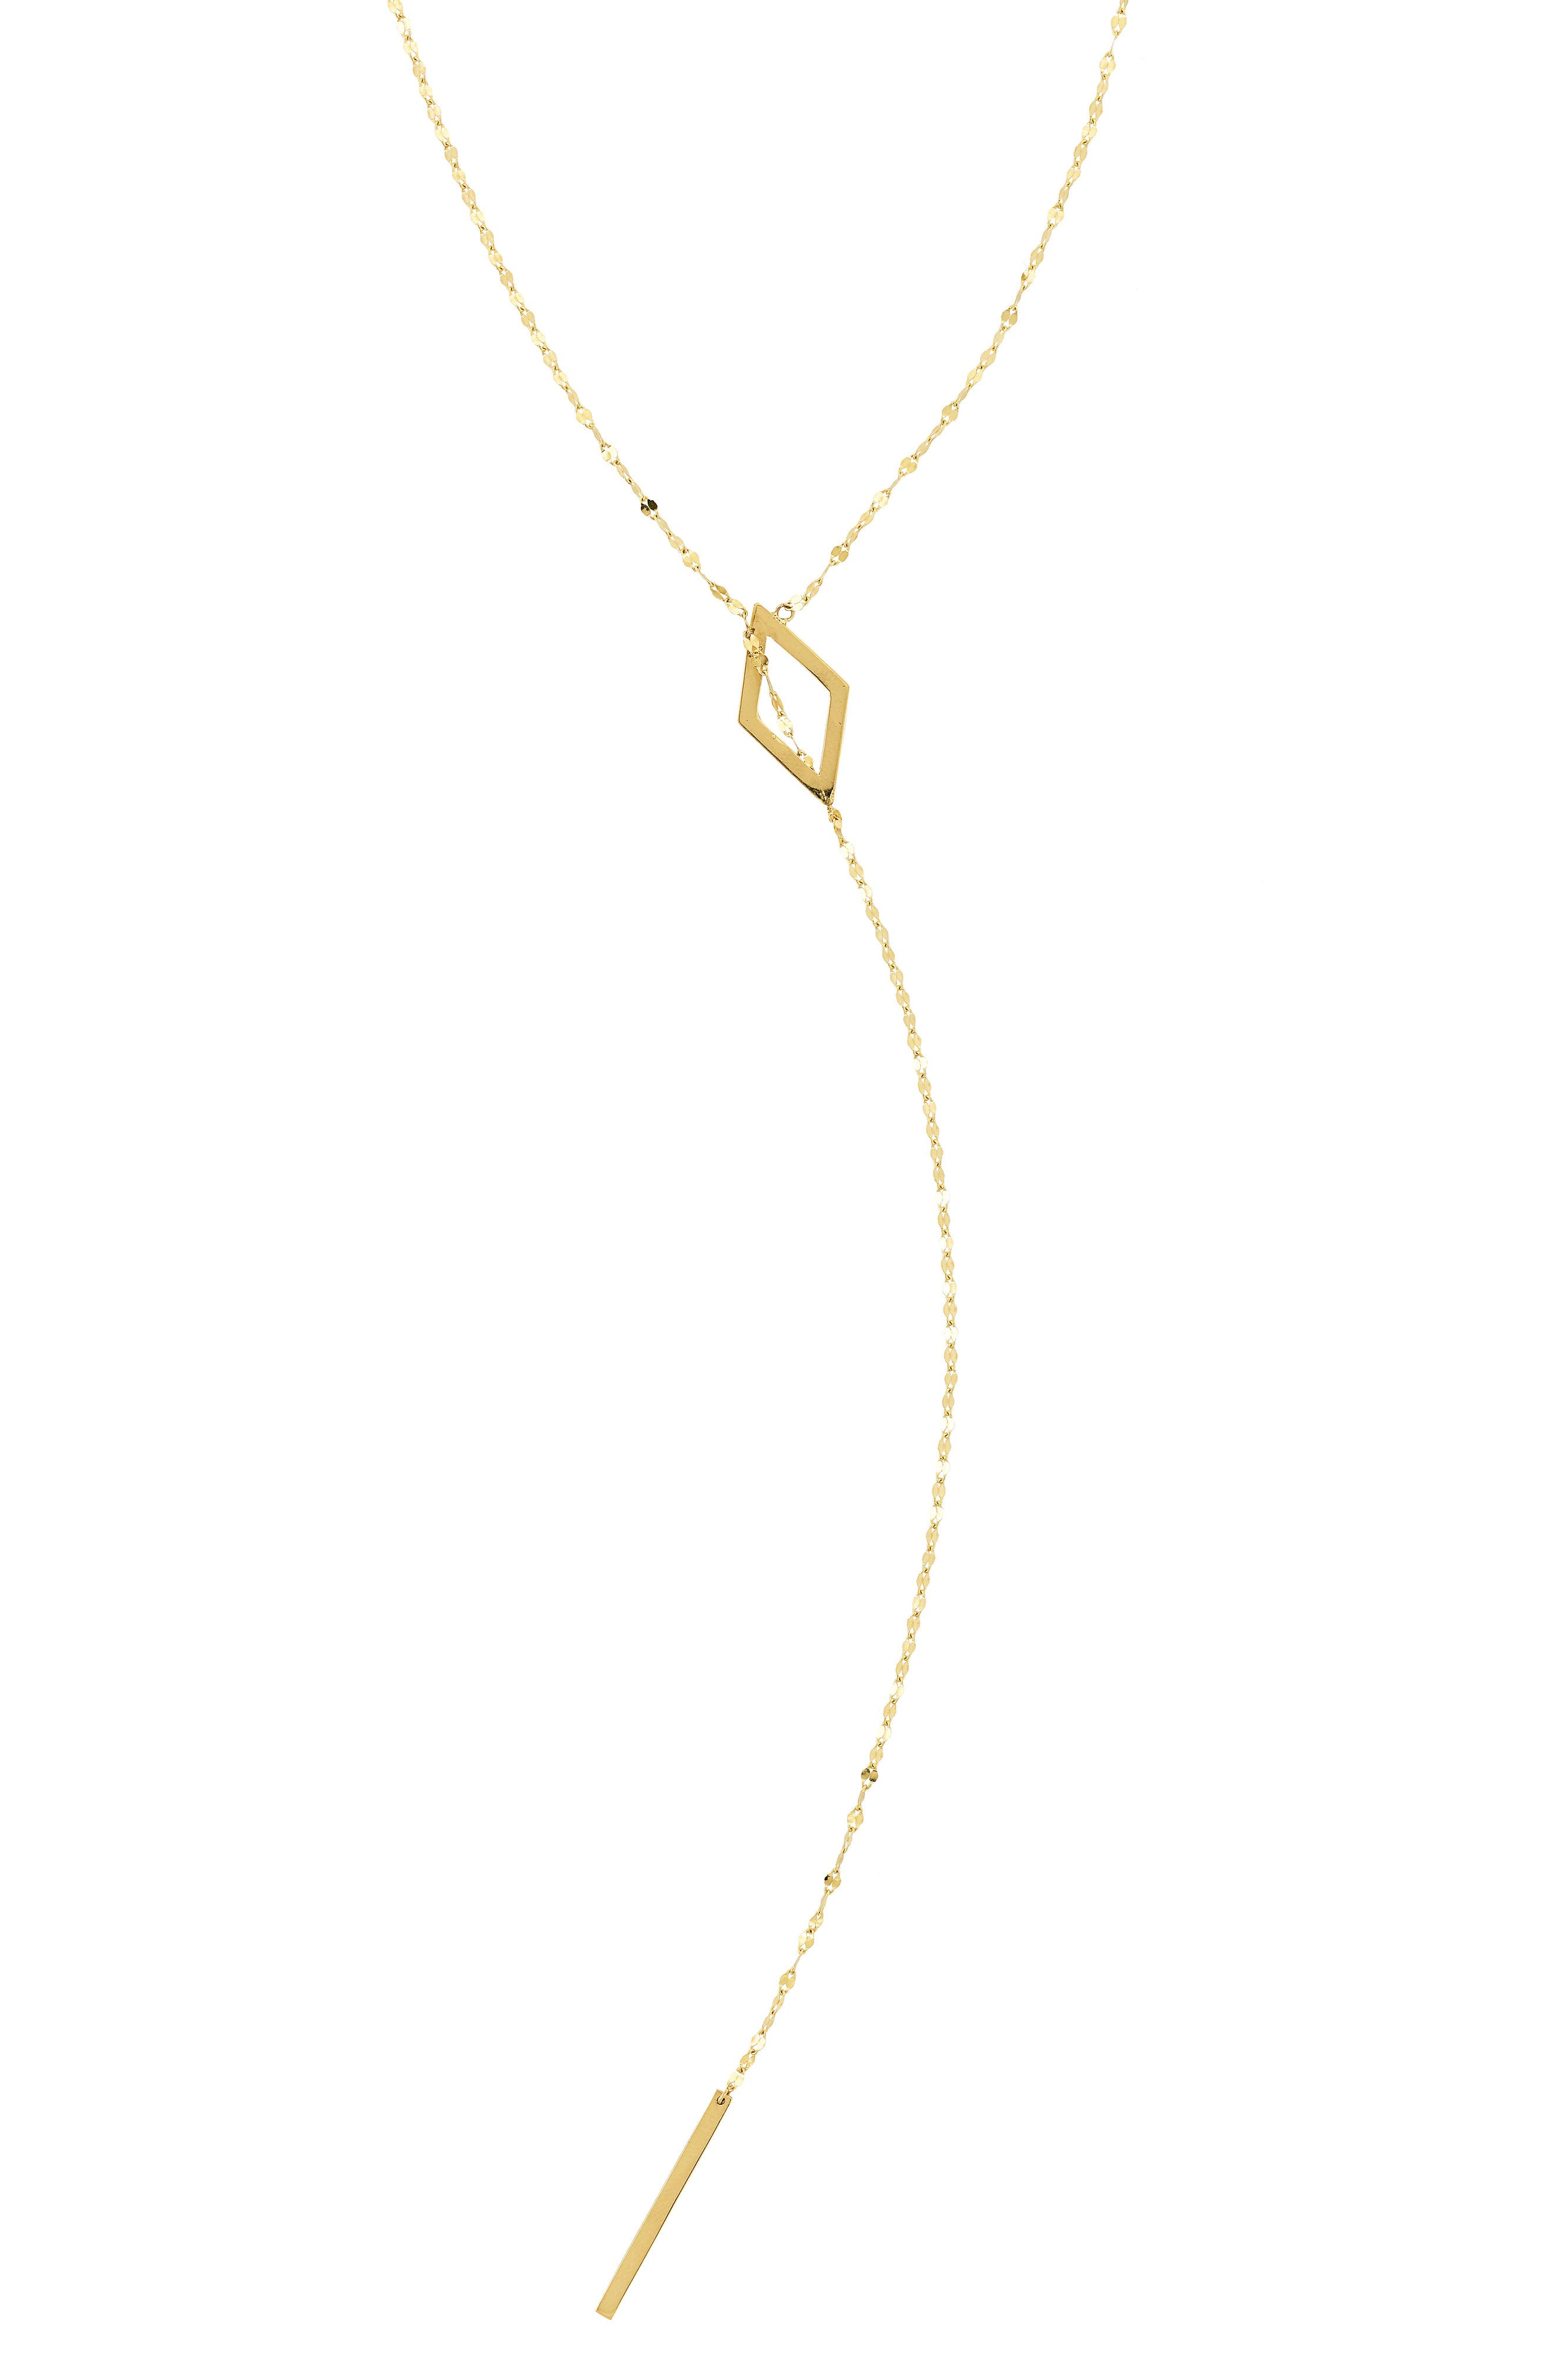 Lariat Necklace,                         Main,                         color, Yellow Gold